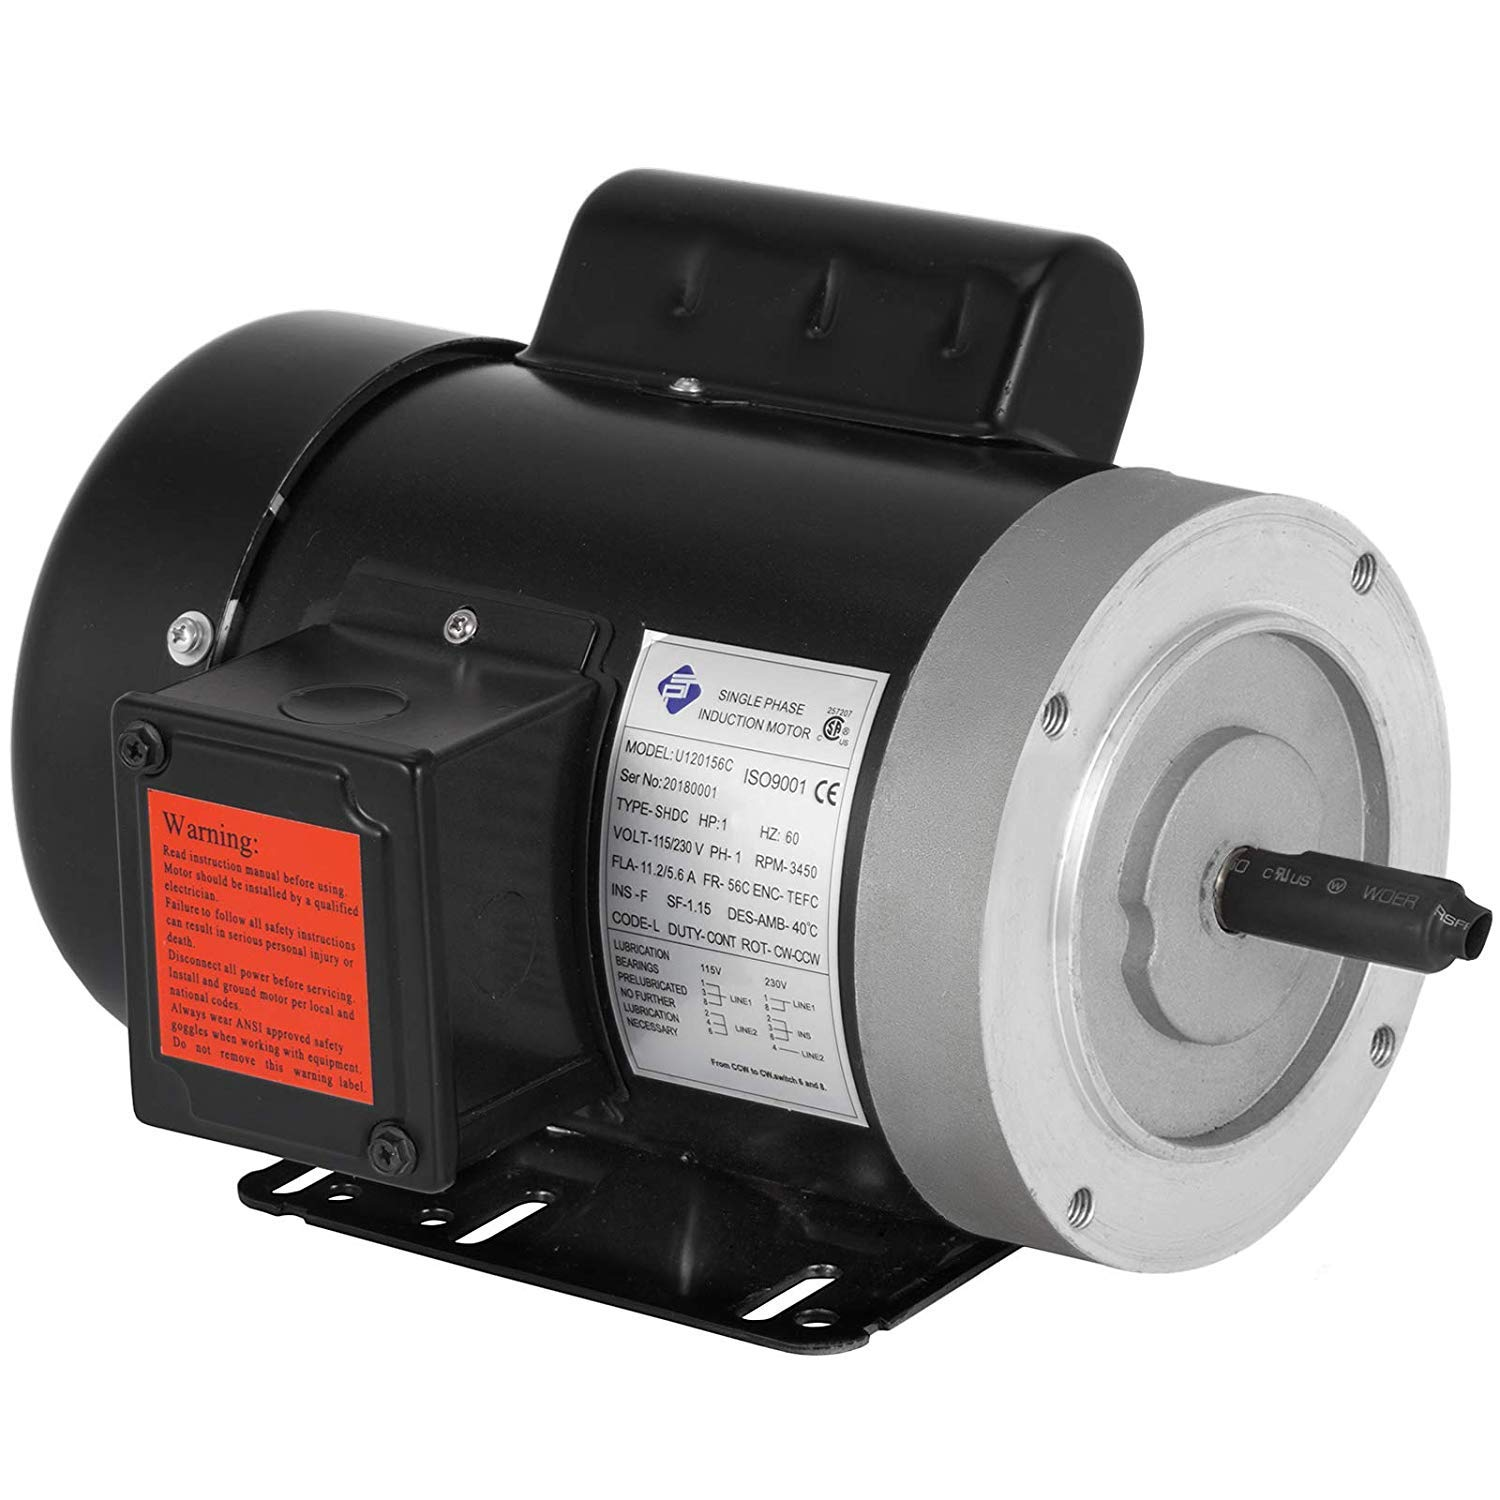 Mophorn 1 Hp Electric Motor 3450 RPM 11.2-5.6 A Single Phase Motor AC 115V 230V Air Compressor Motor 56C Frame Suit for Agricultural Machinery and General Equipment